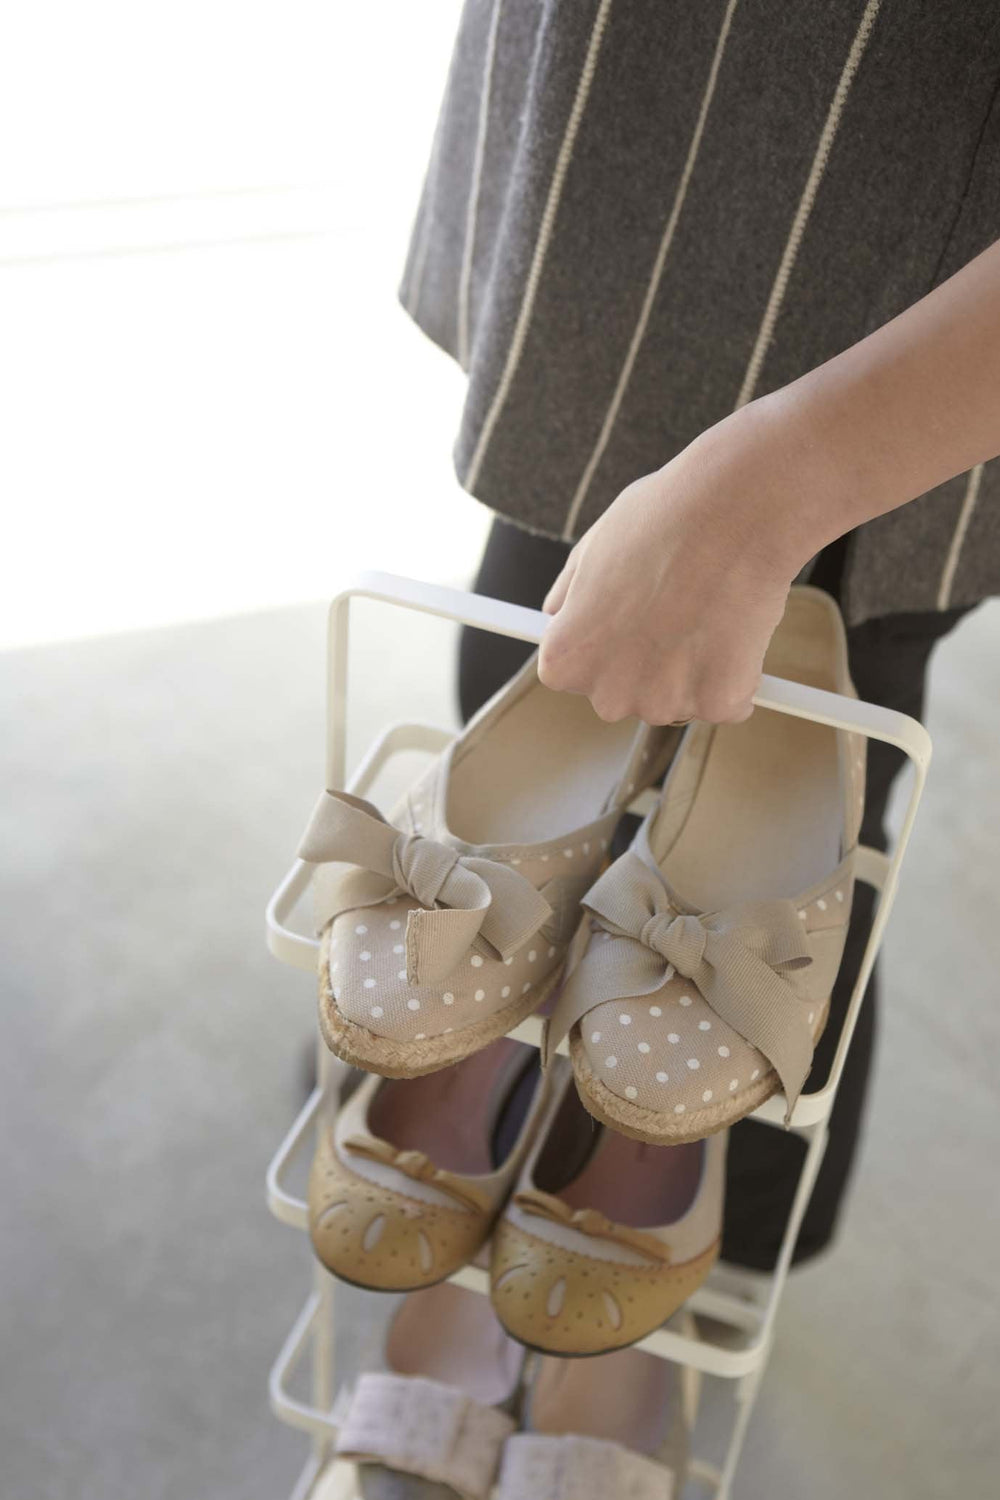 Someone carrying white Yamazaki shoe rack filled with shoes in a bedroom